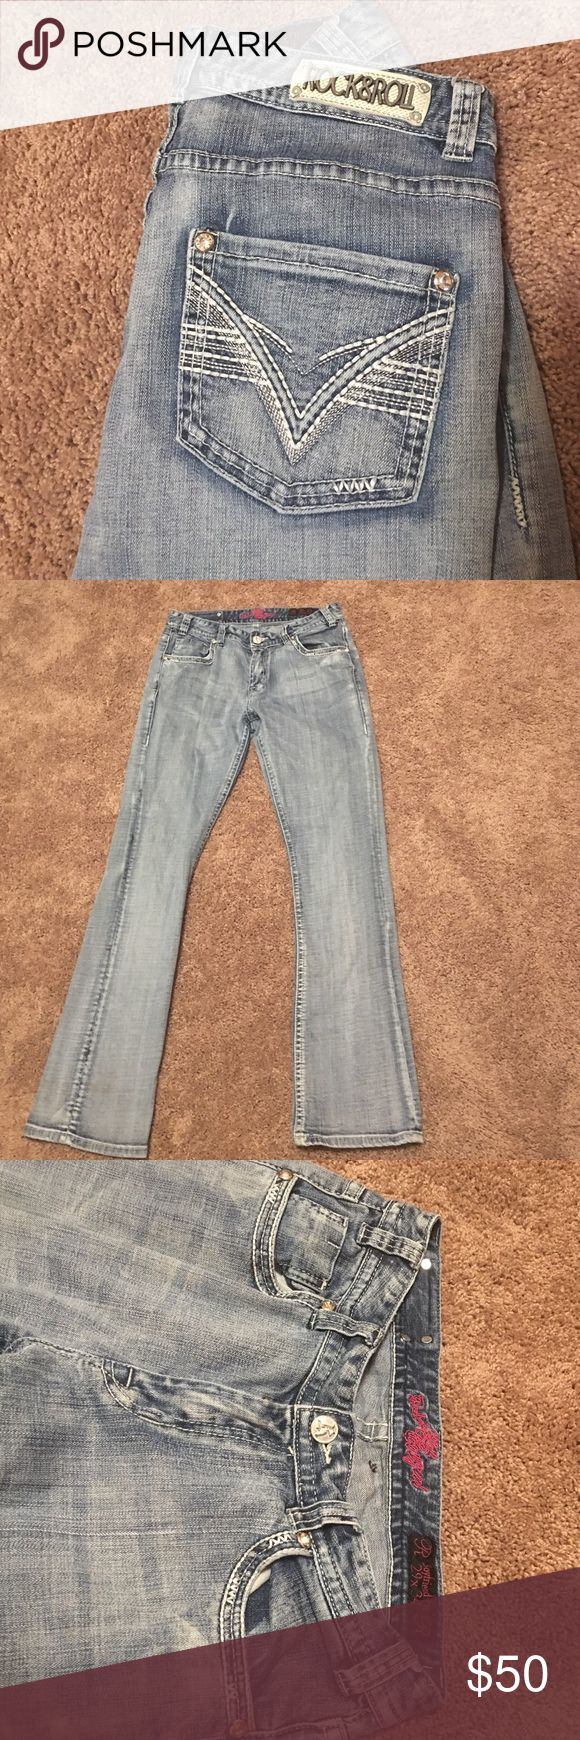 Rock and roll cowgirl boyfriend jeans Rock and roll cowgirl boyfriend jeans excellent condition Rock & Roll Cowgirl Jeans Boyfriend